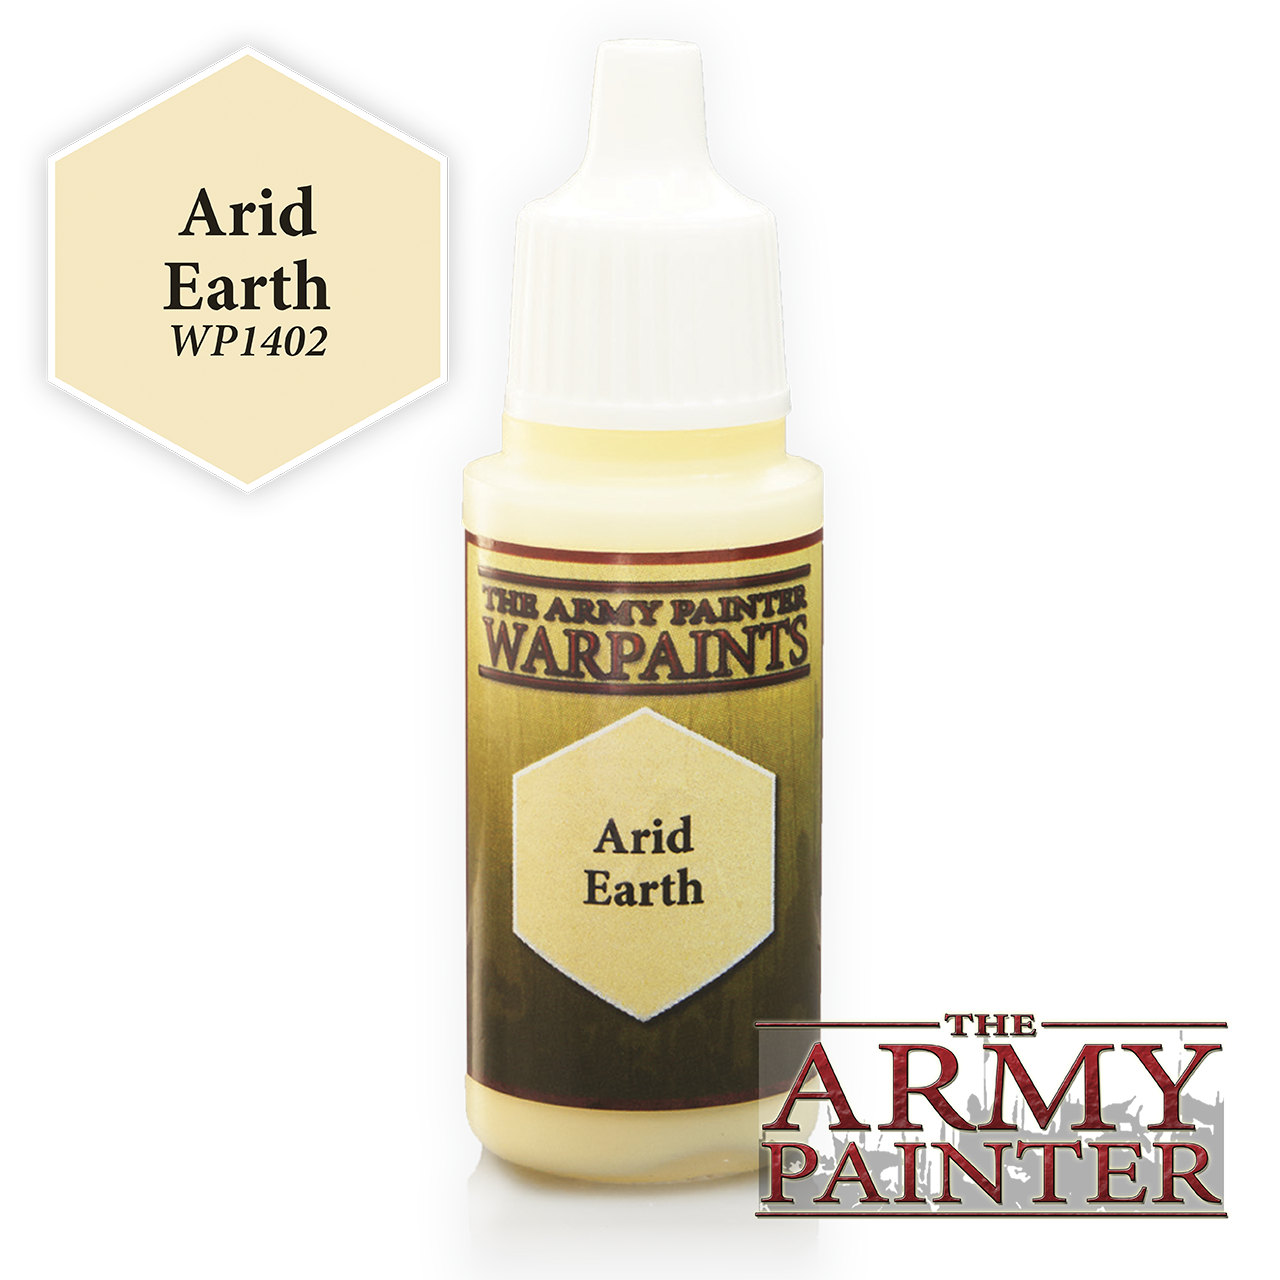 The Army Painter Warpaints: Arid Earth (18ml)